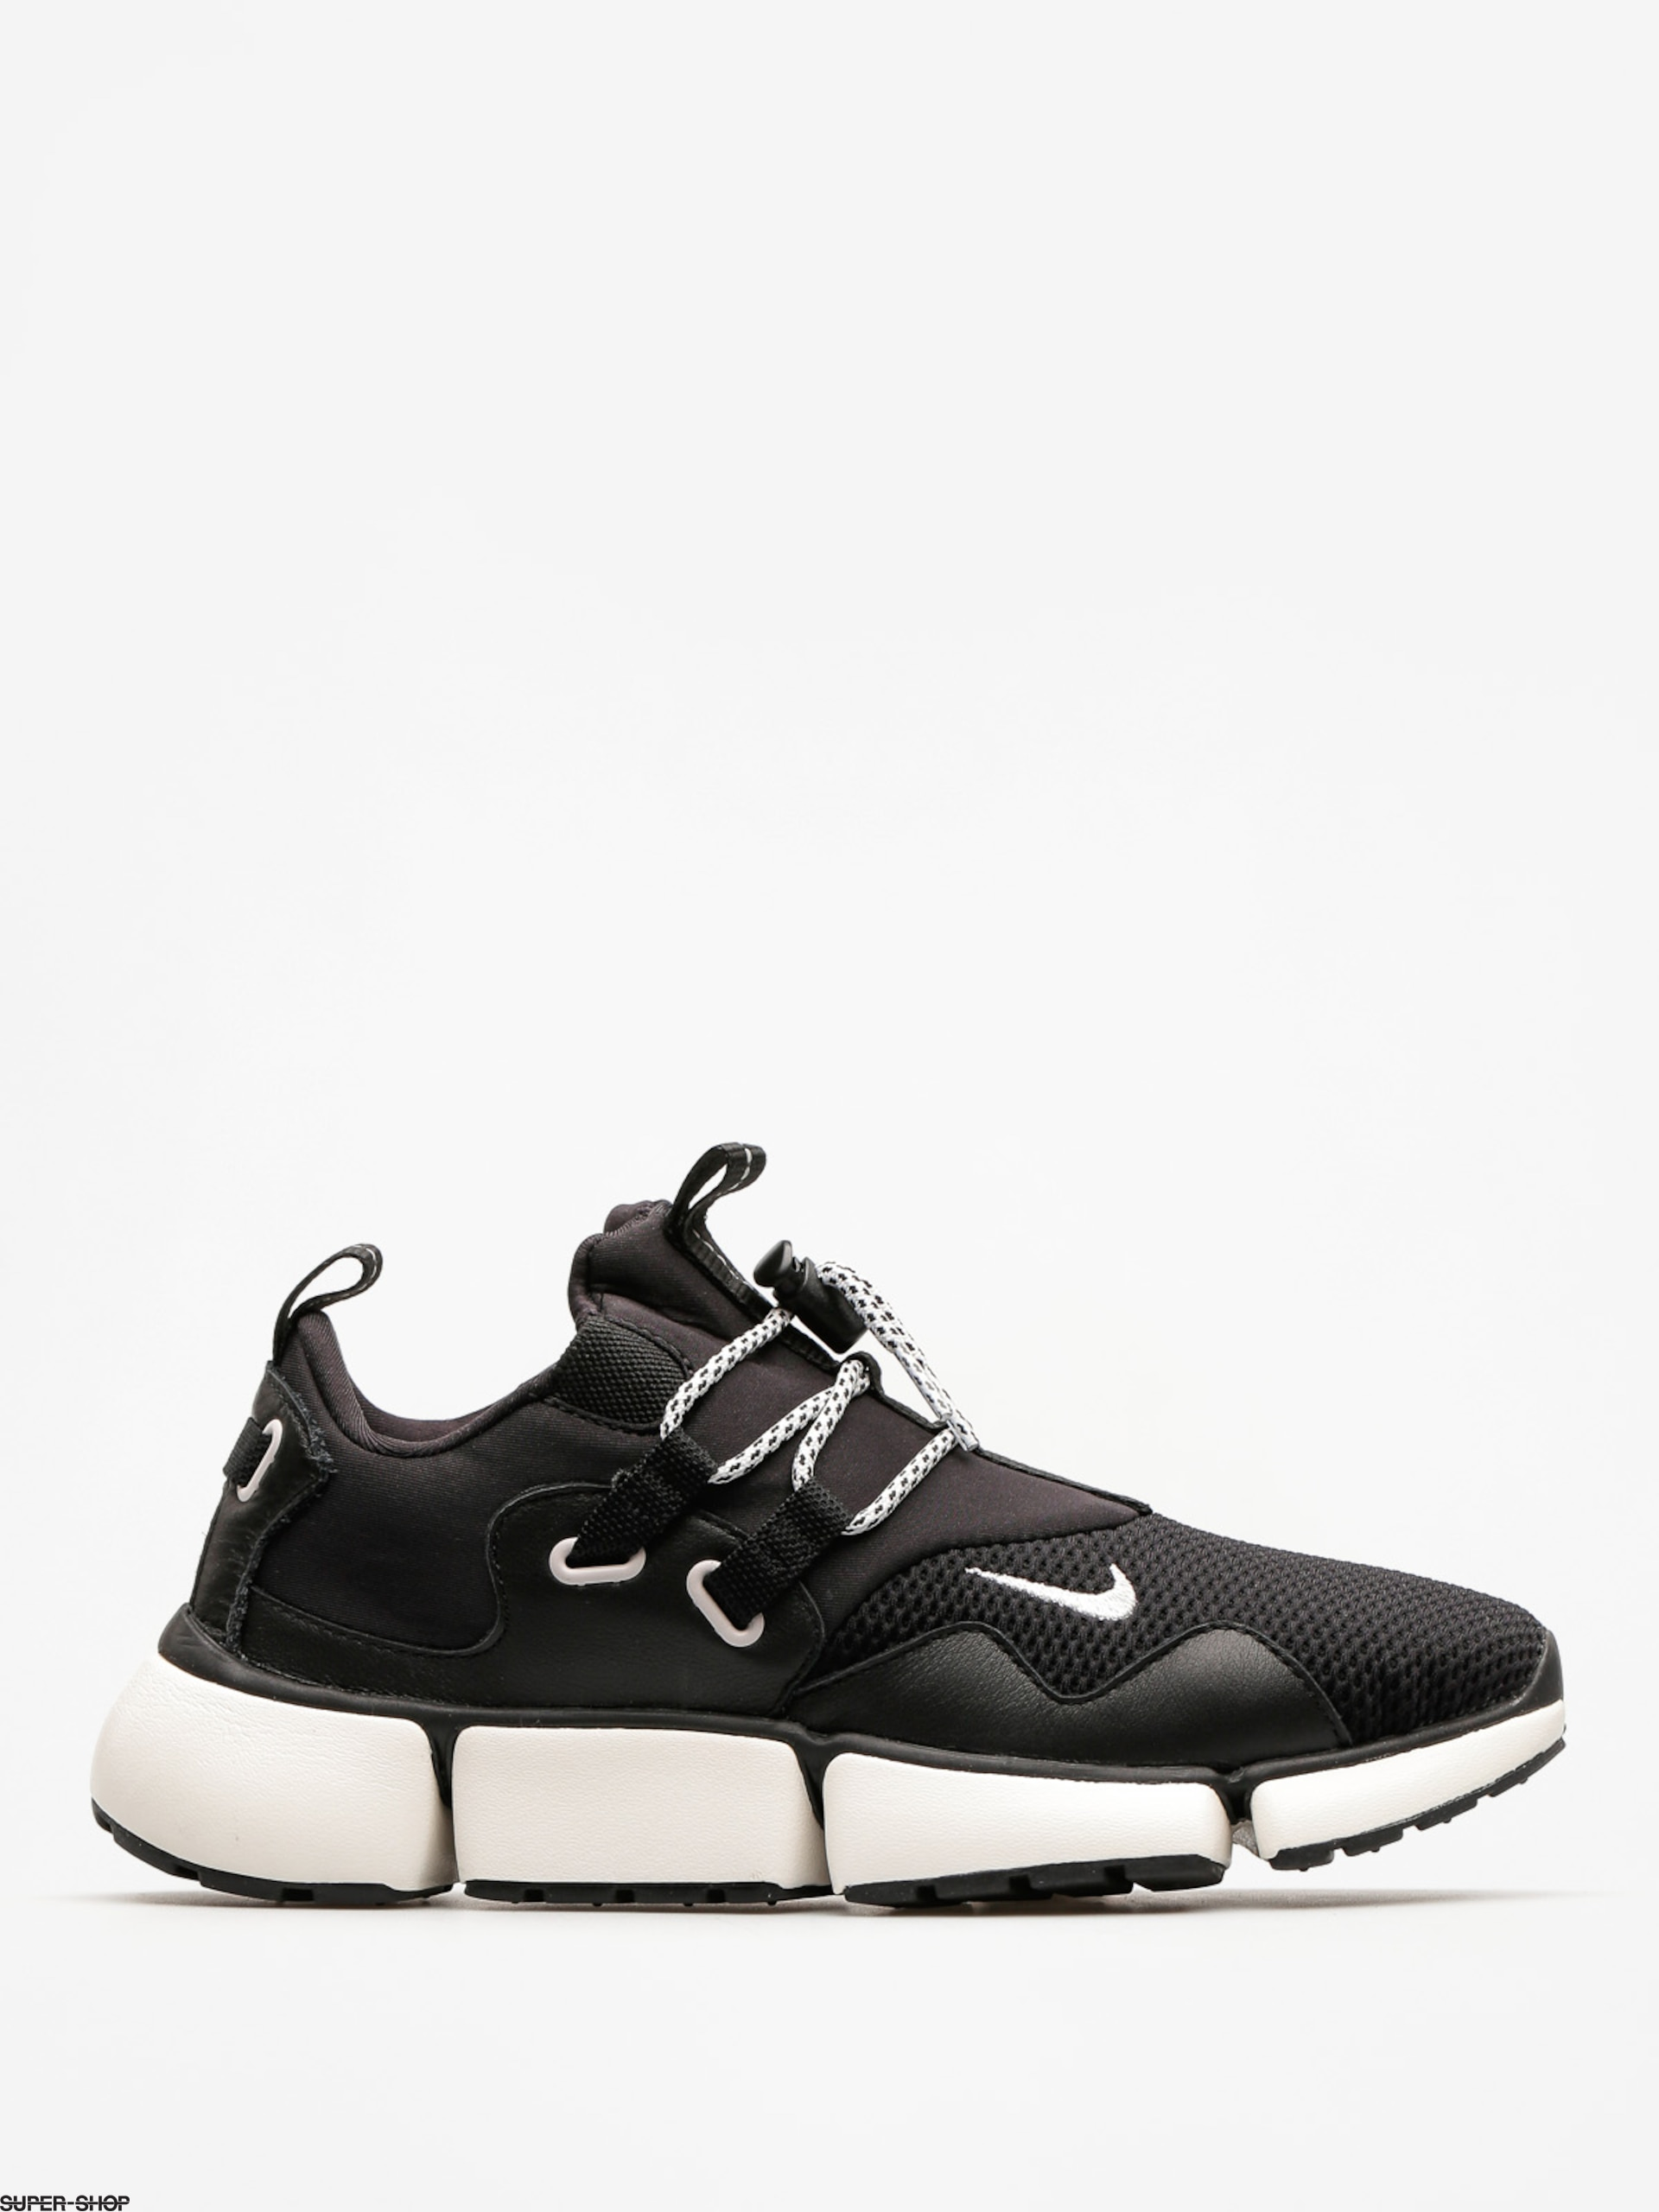 Nike Schuhe Pocket Knife Dm